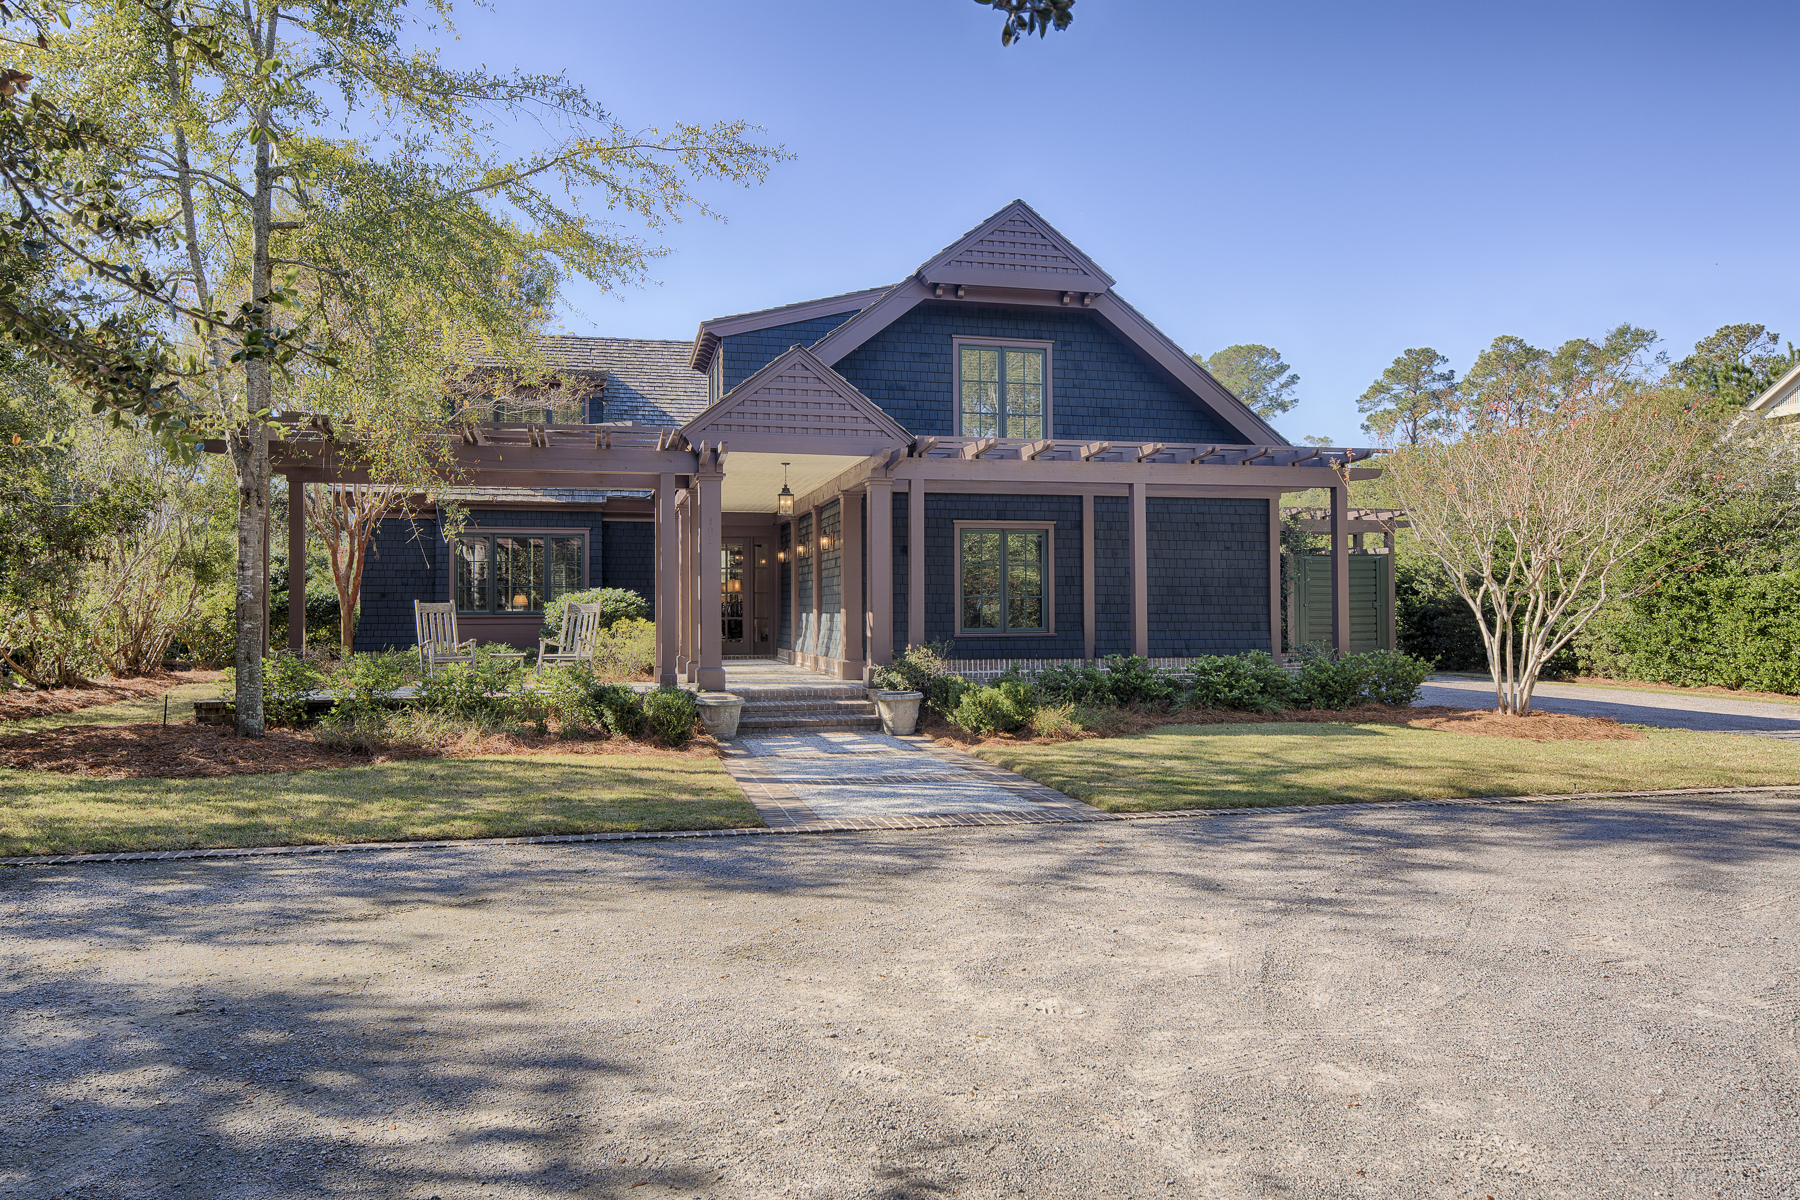 Single Family Home for Sale at 103 Anson Park Road Bluffton, South Carolina 29910 United States